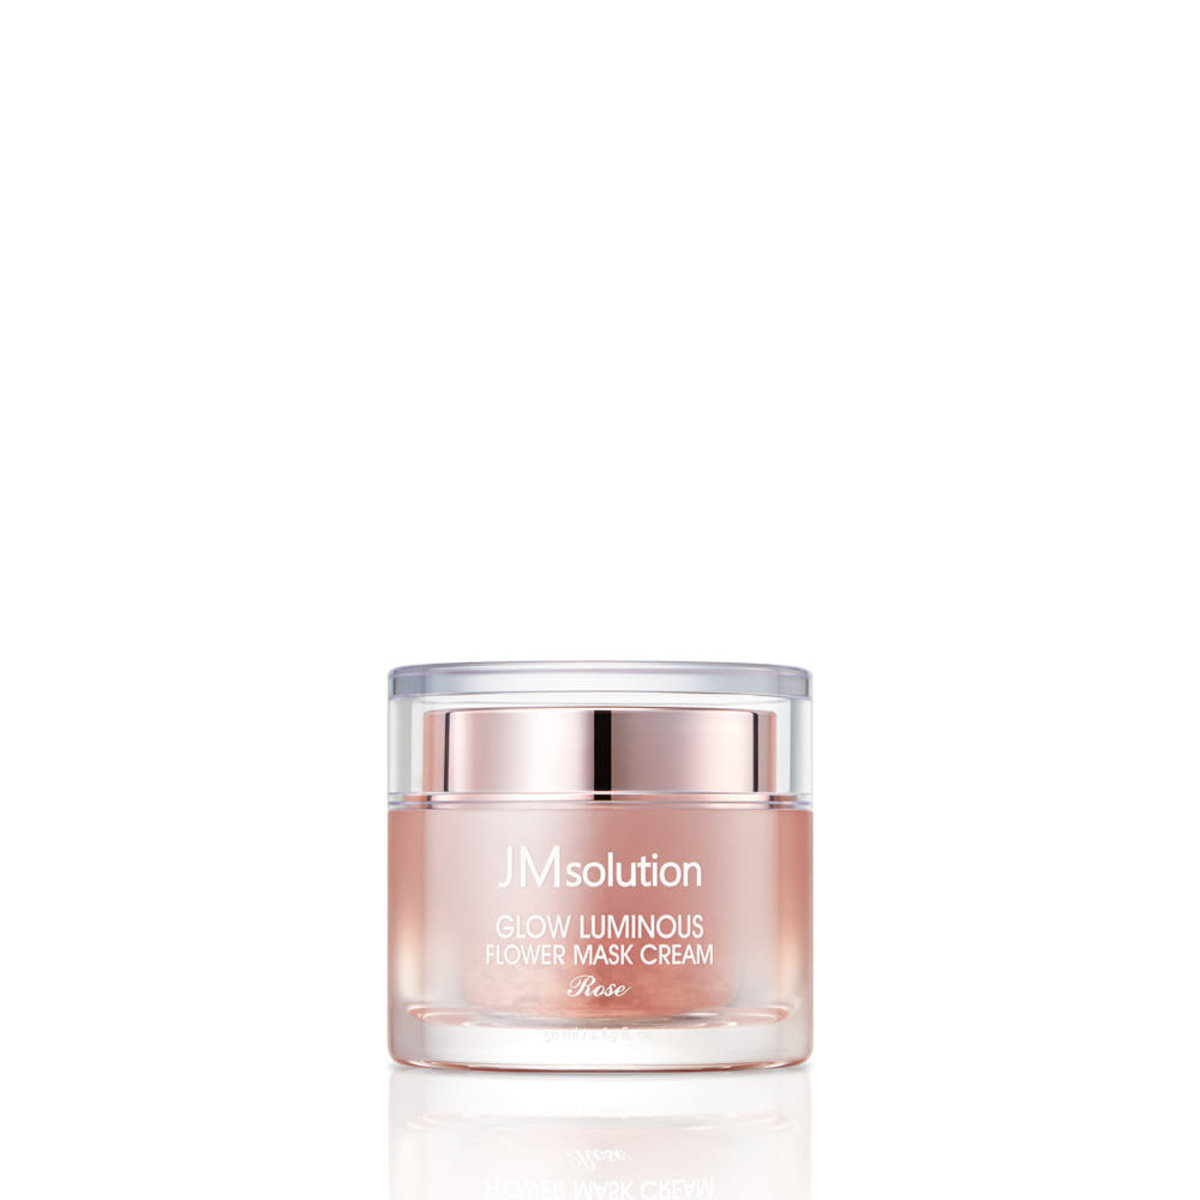 glow luminous flower mask cream 50ml [Parallel Imports]